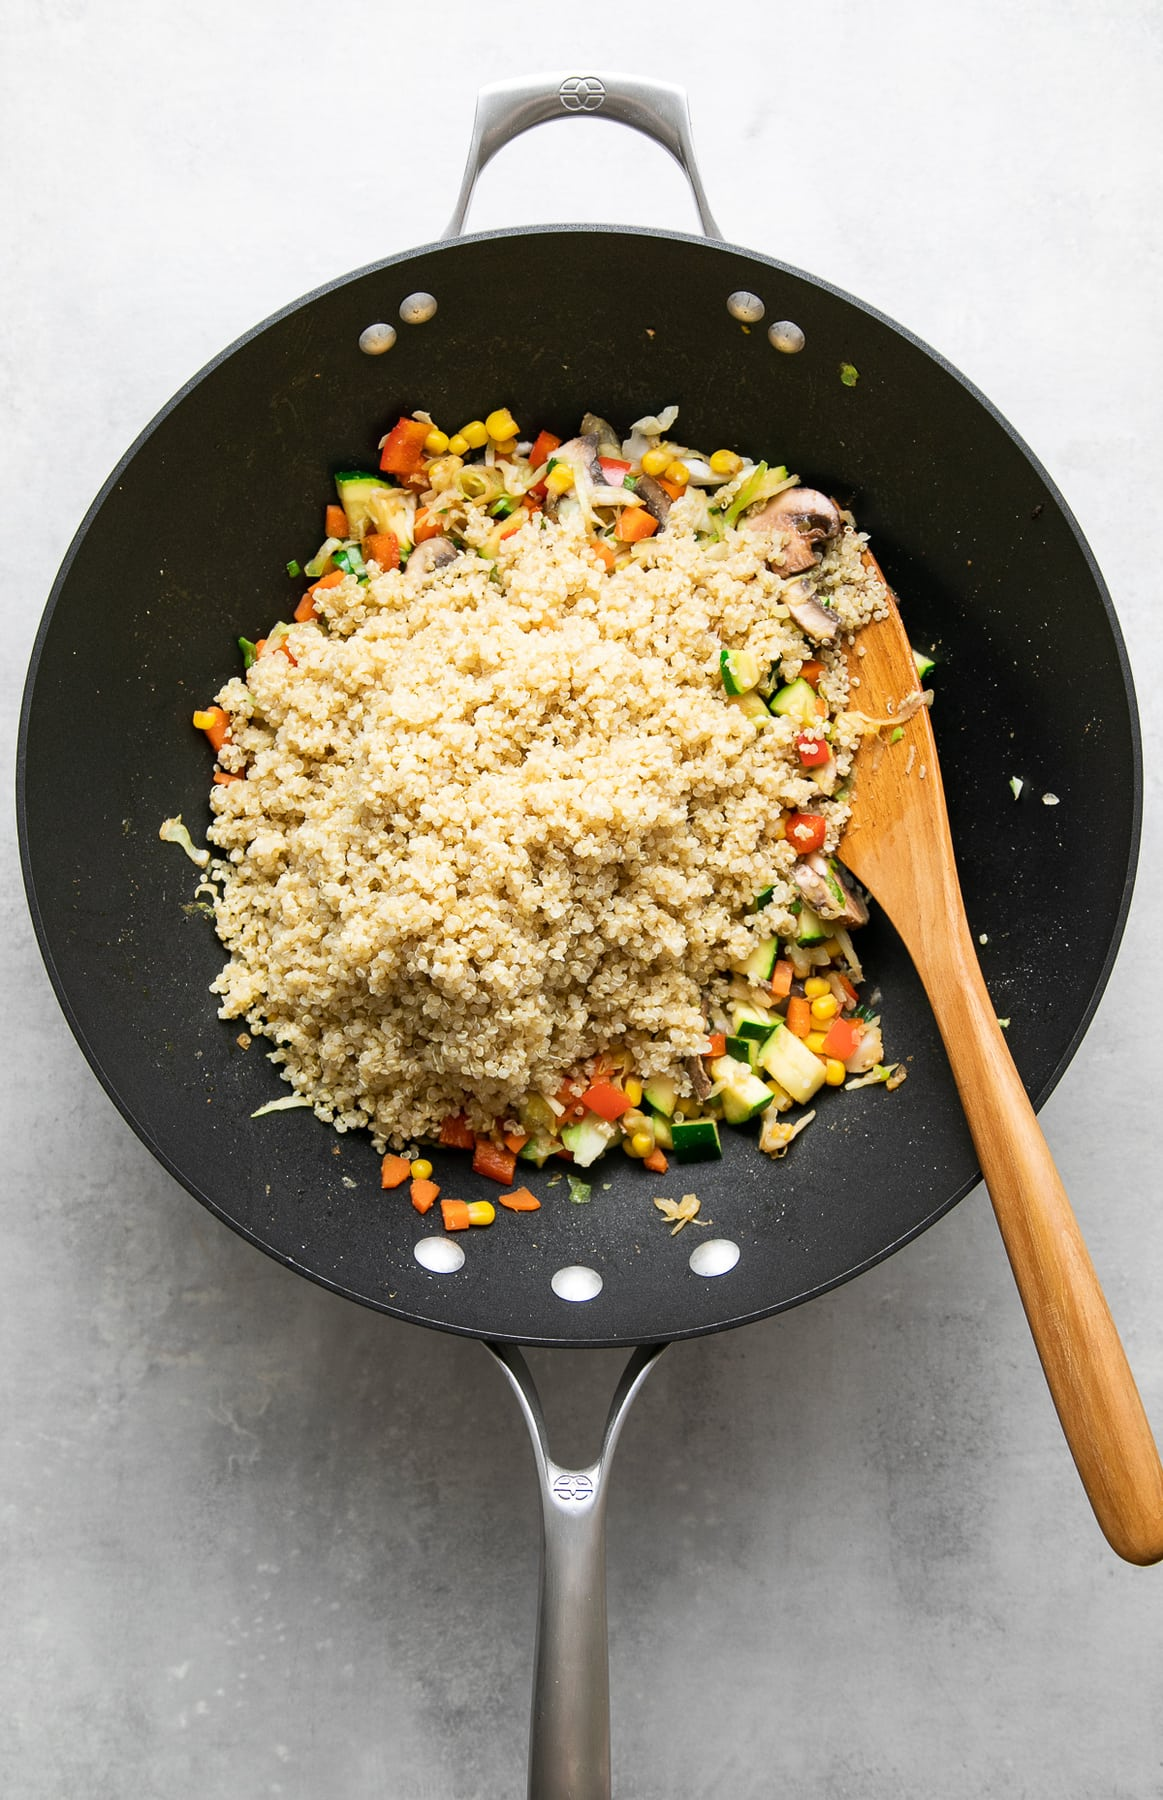 top down view of quinoa added to stir fried veggies to make quinoa fried rice.